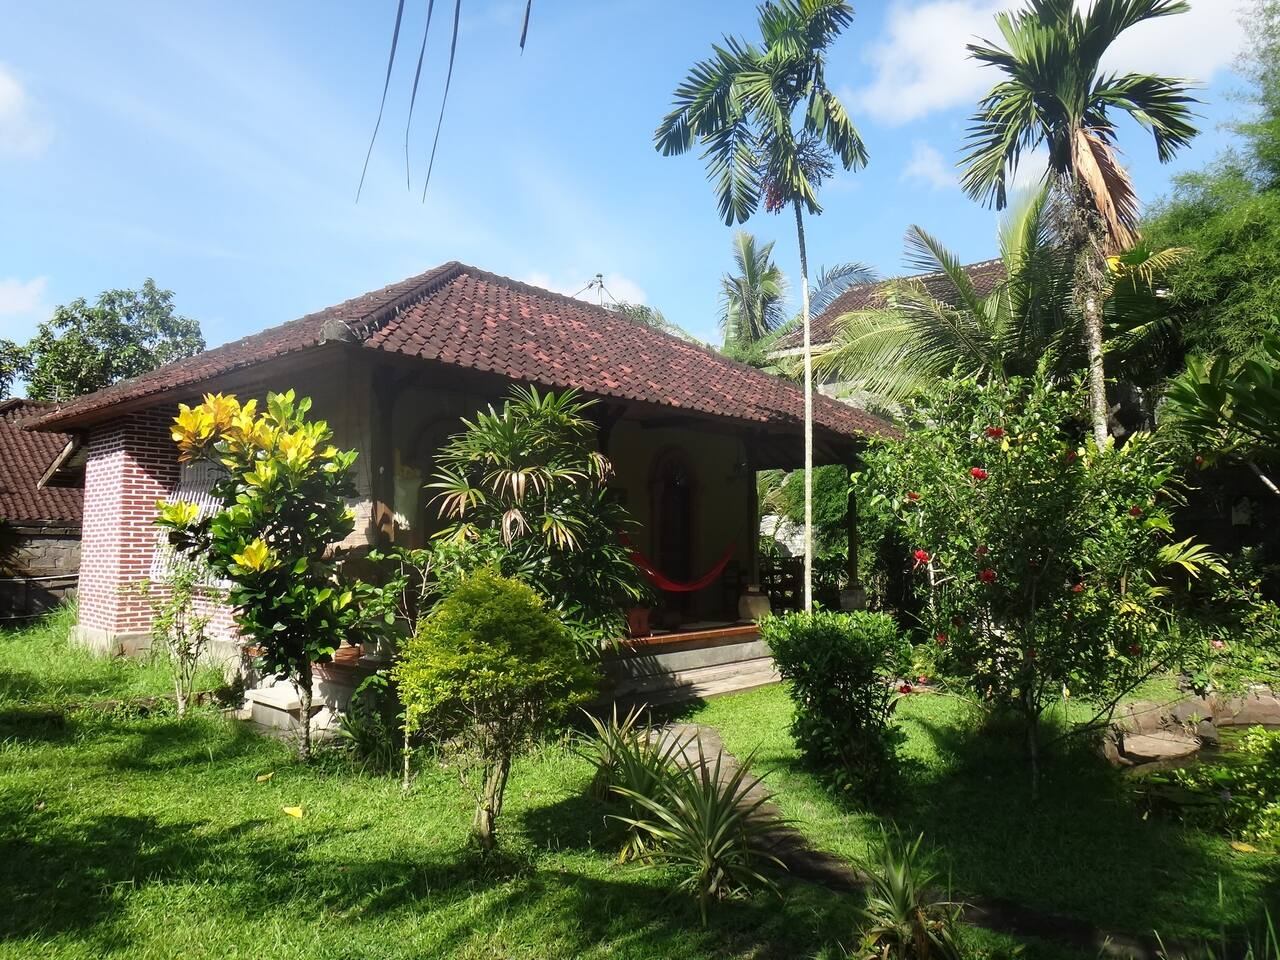 the garden wissswth the bungalow. it has 2 rooms, purple and orangeSeskpo, that shbare 1 terrasse1sssssg2sss